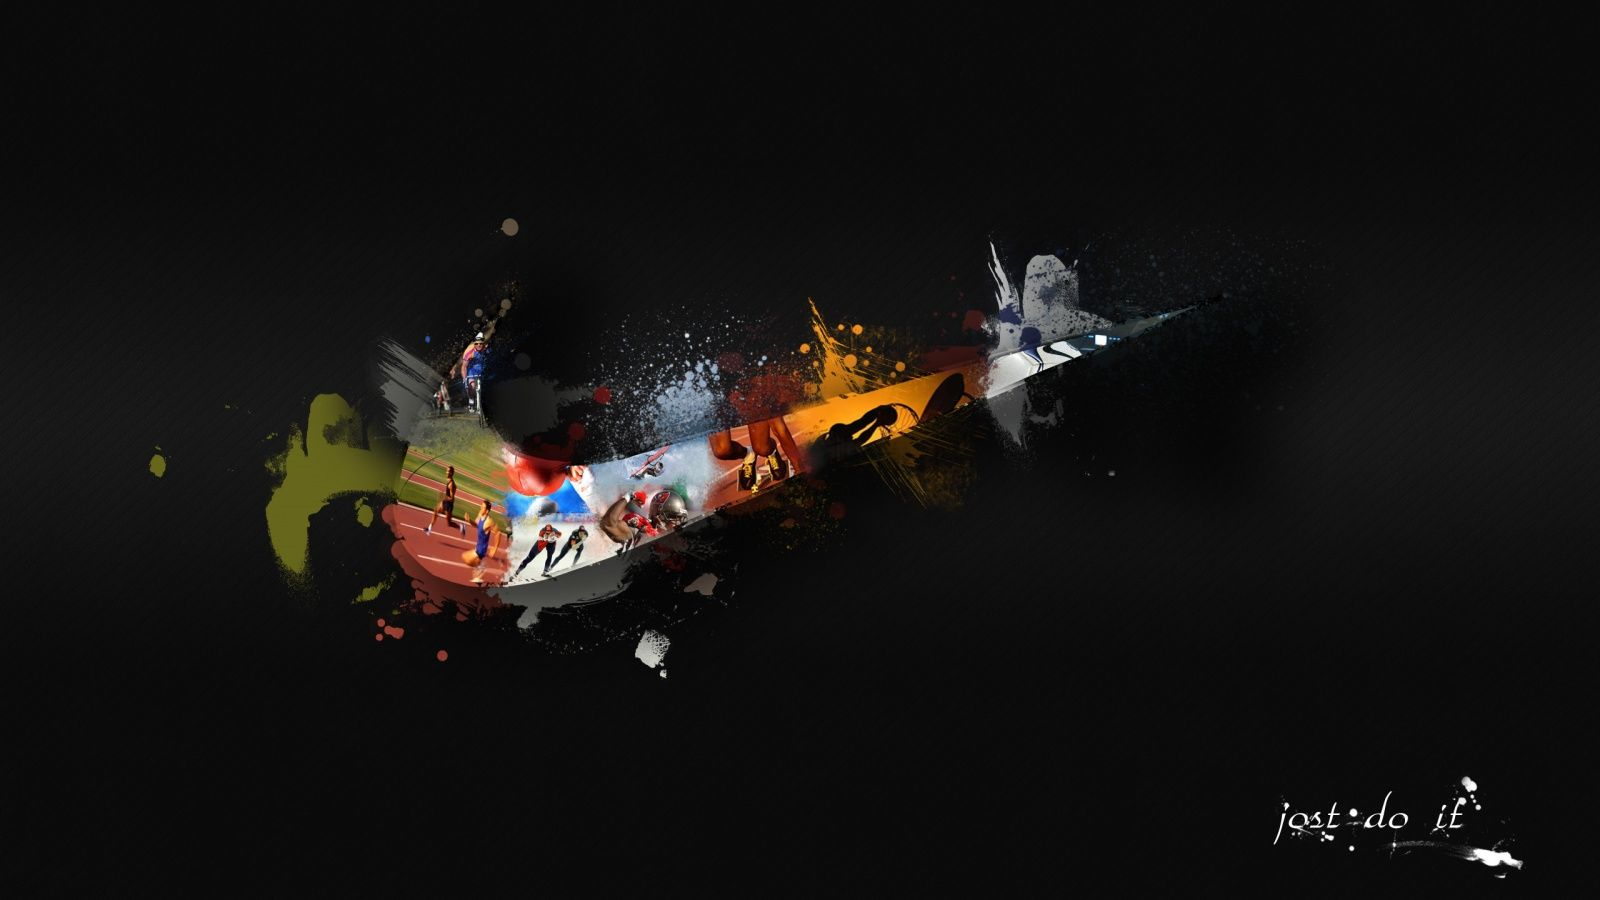 Epic Nike Wallpapers Google Search Just Do It Wallpapers Nike